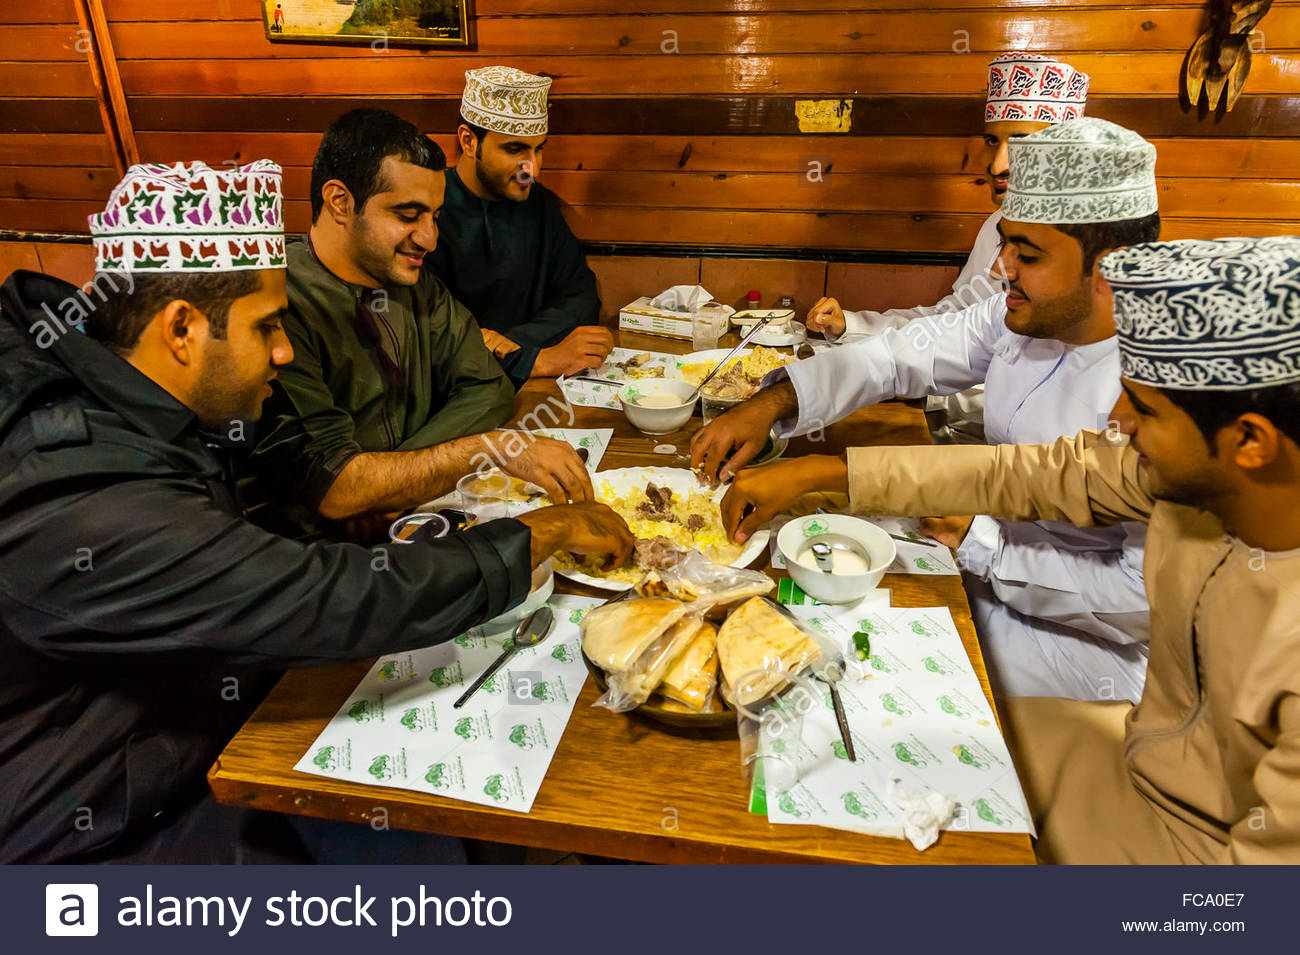 Omani men eating mansaf (the national dish of Jordan), Al-Quds Restaurant, Downtown Amman, Jordan. - Stock Image